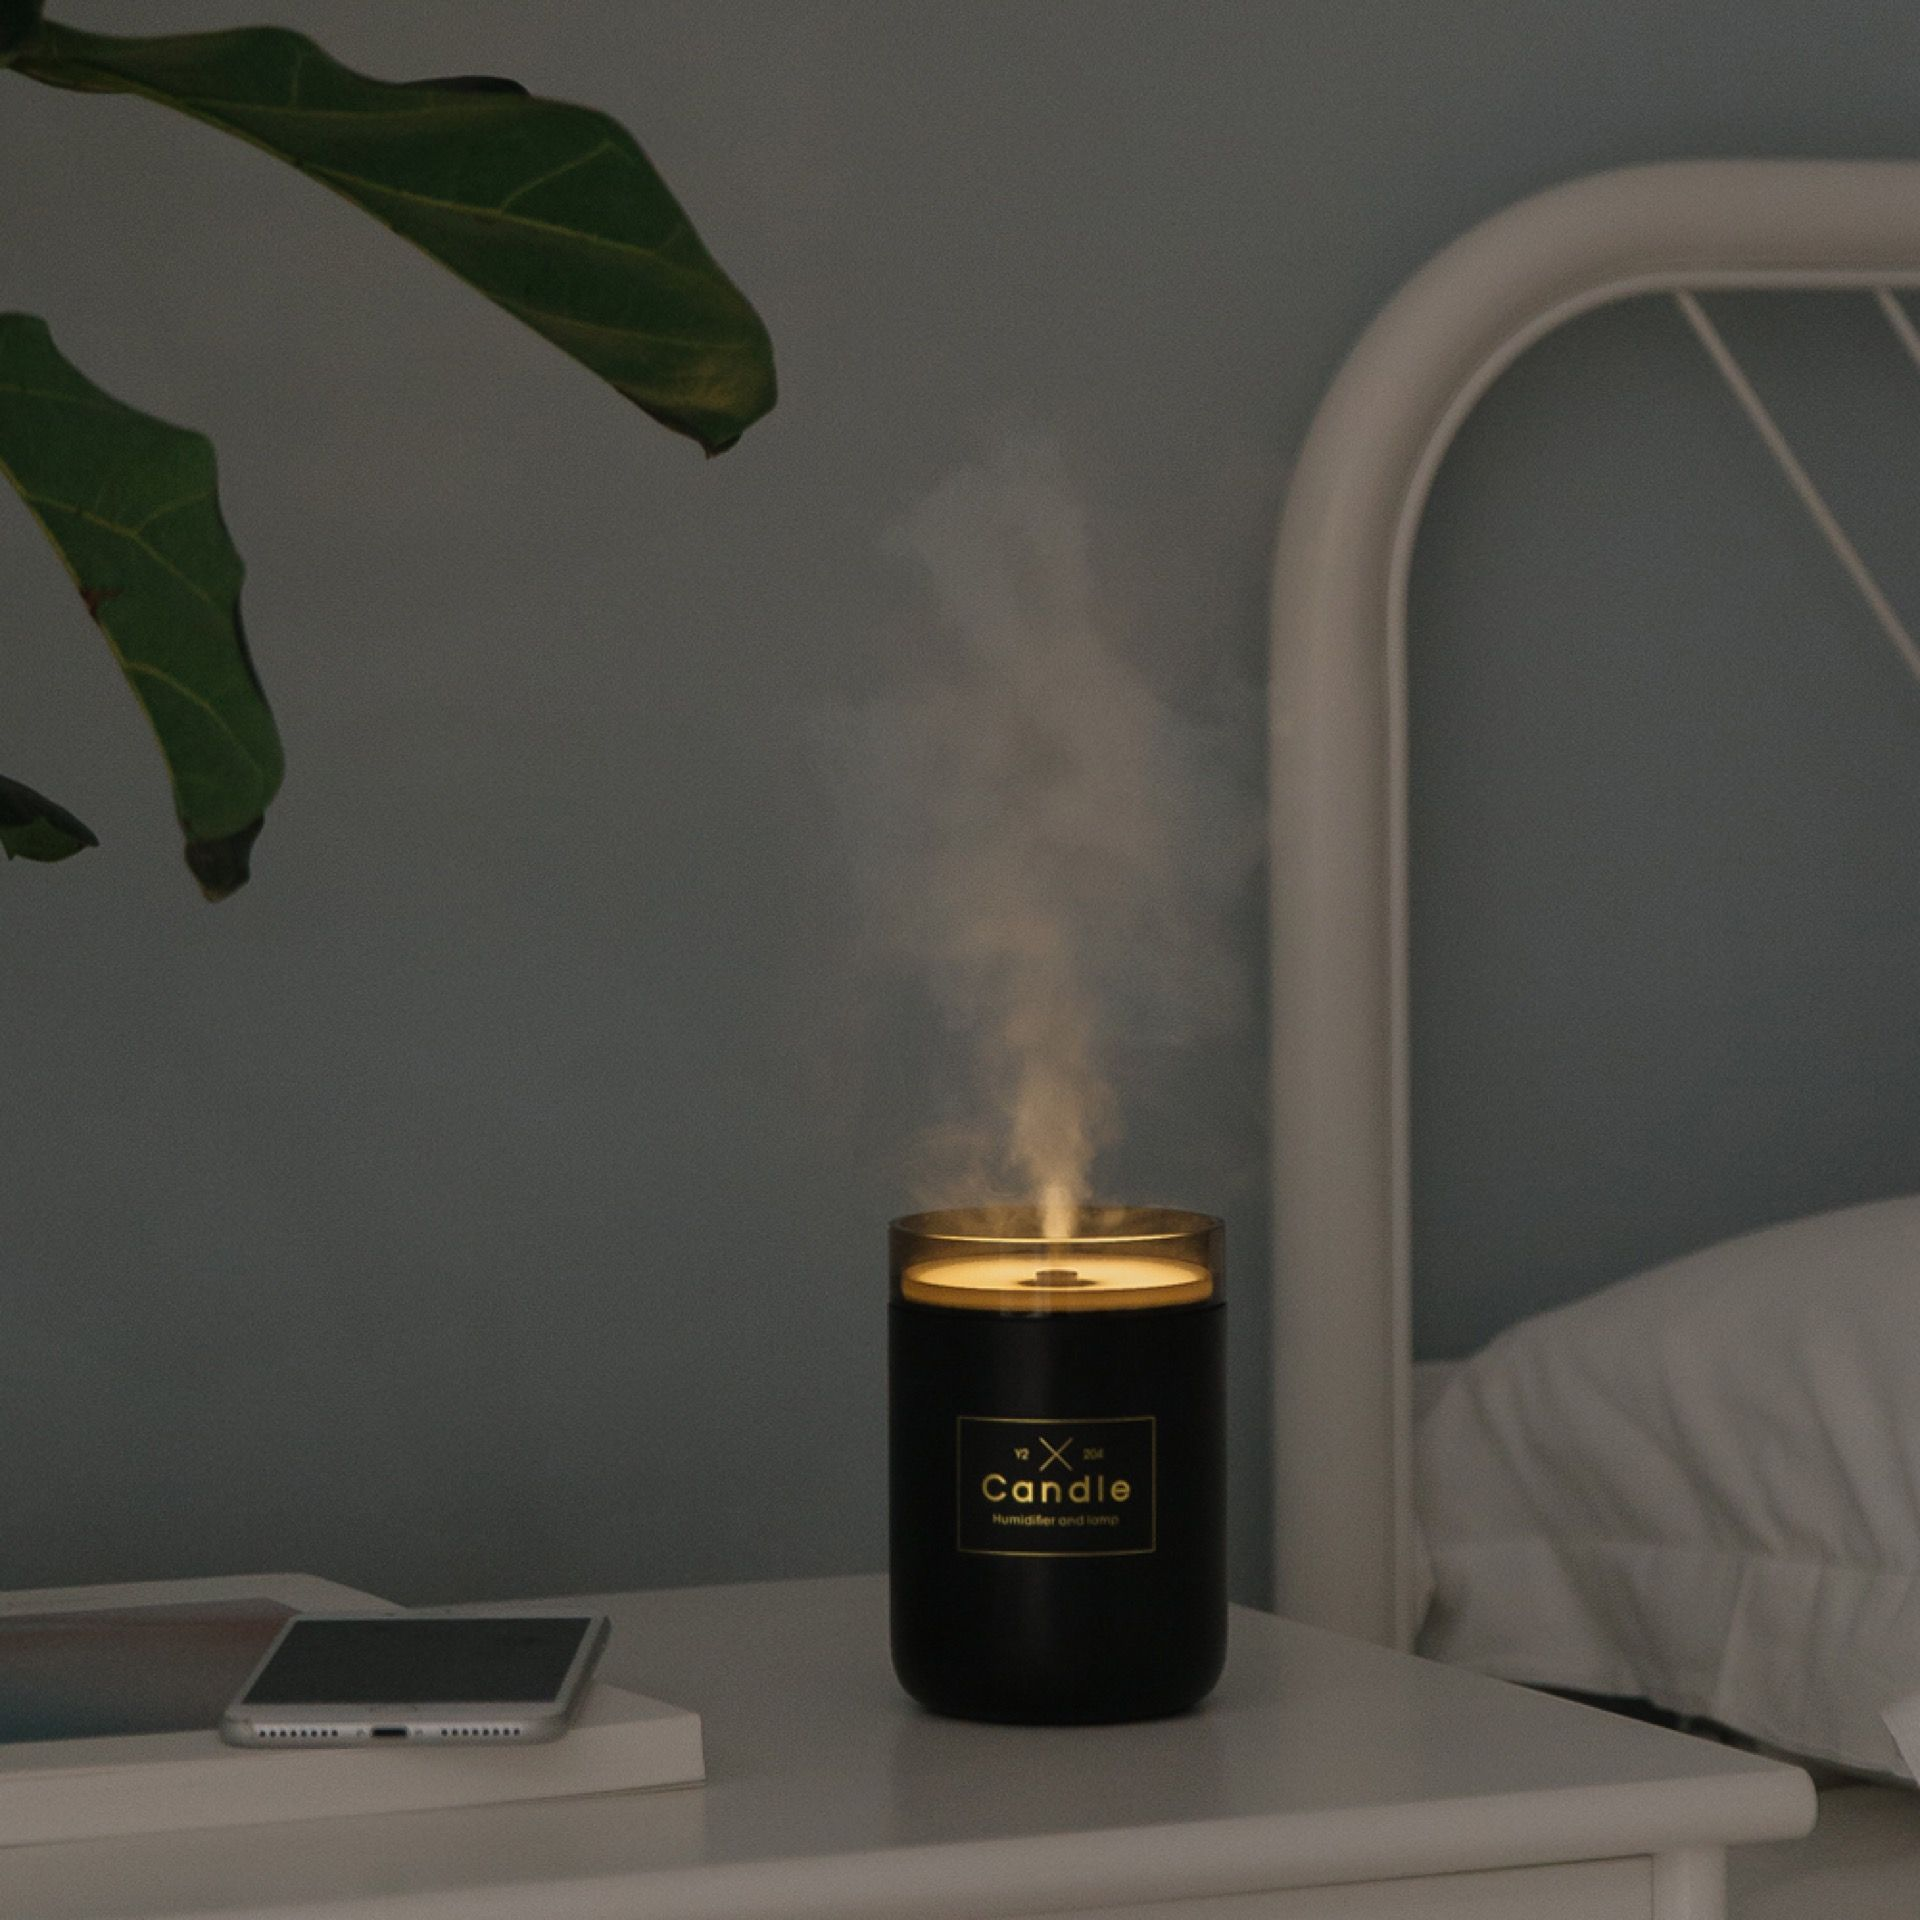 Pin by Key.L on electronic products Candle diffuser, Air